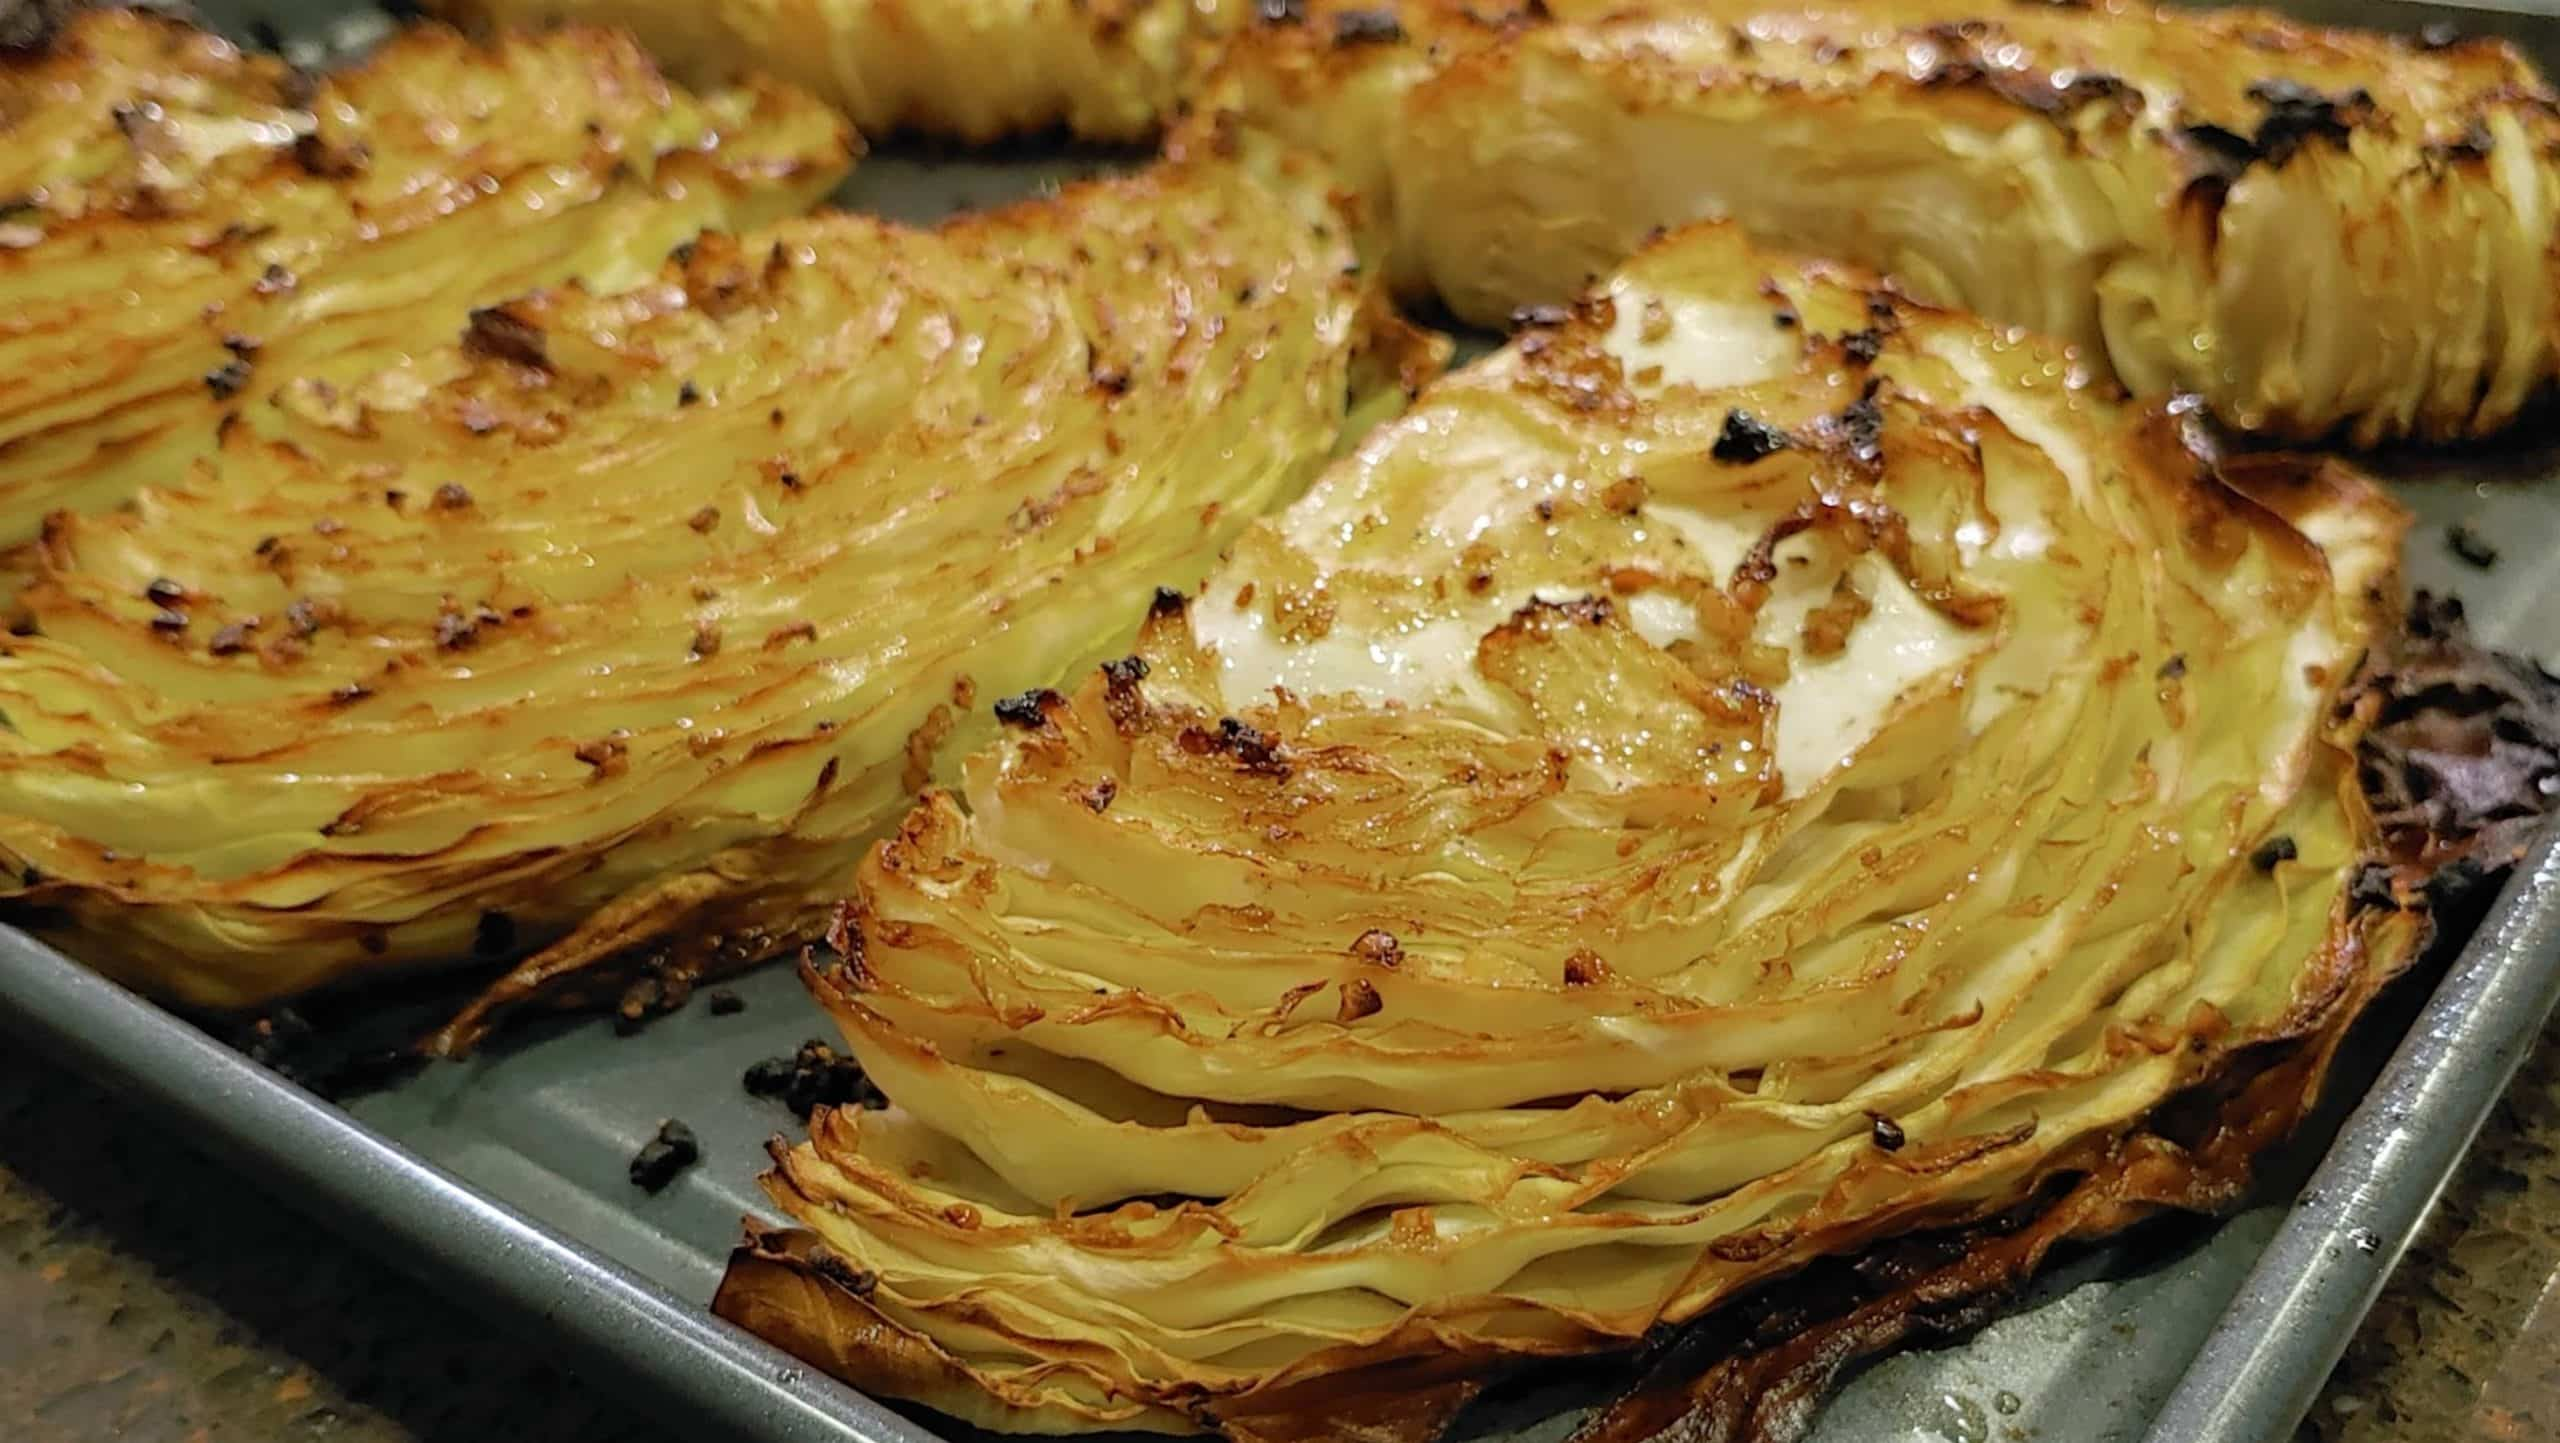 roasted cabbage - Dining in with Danielle